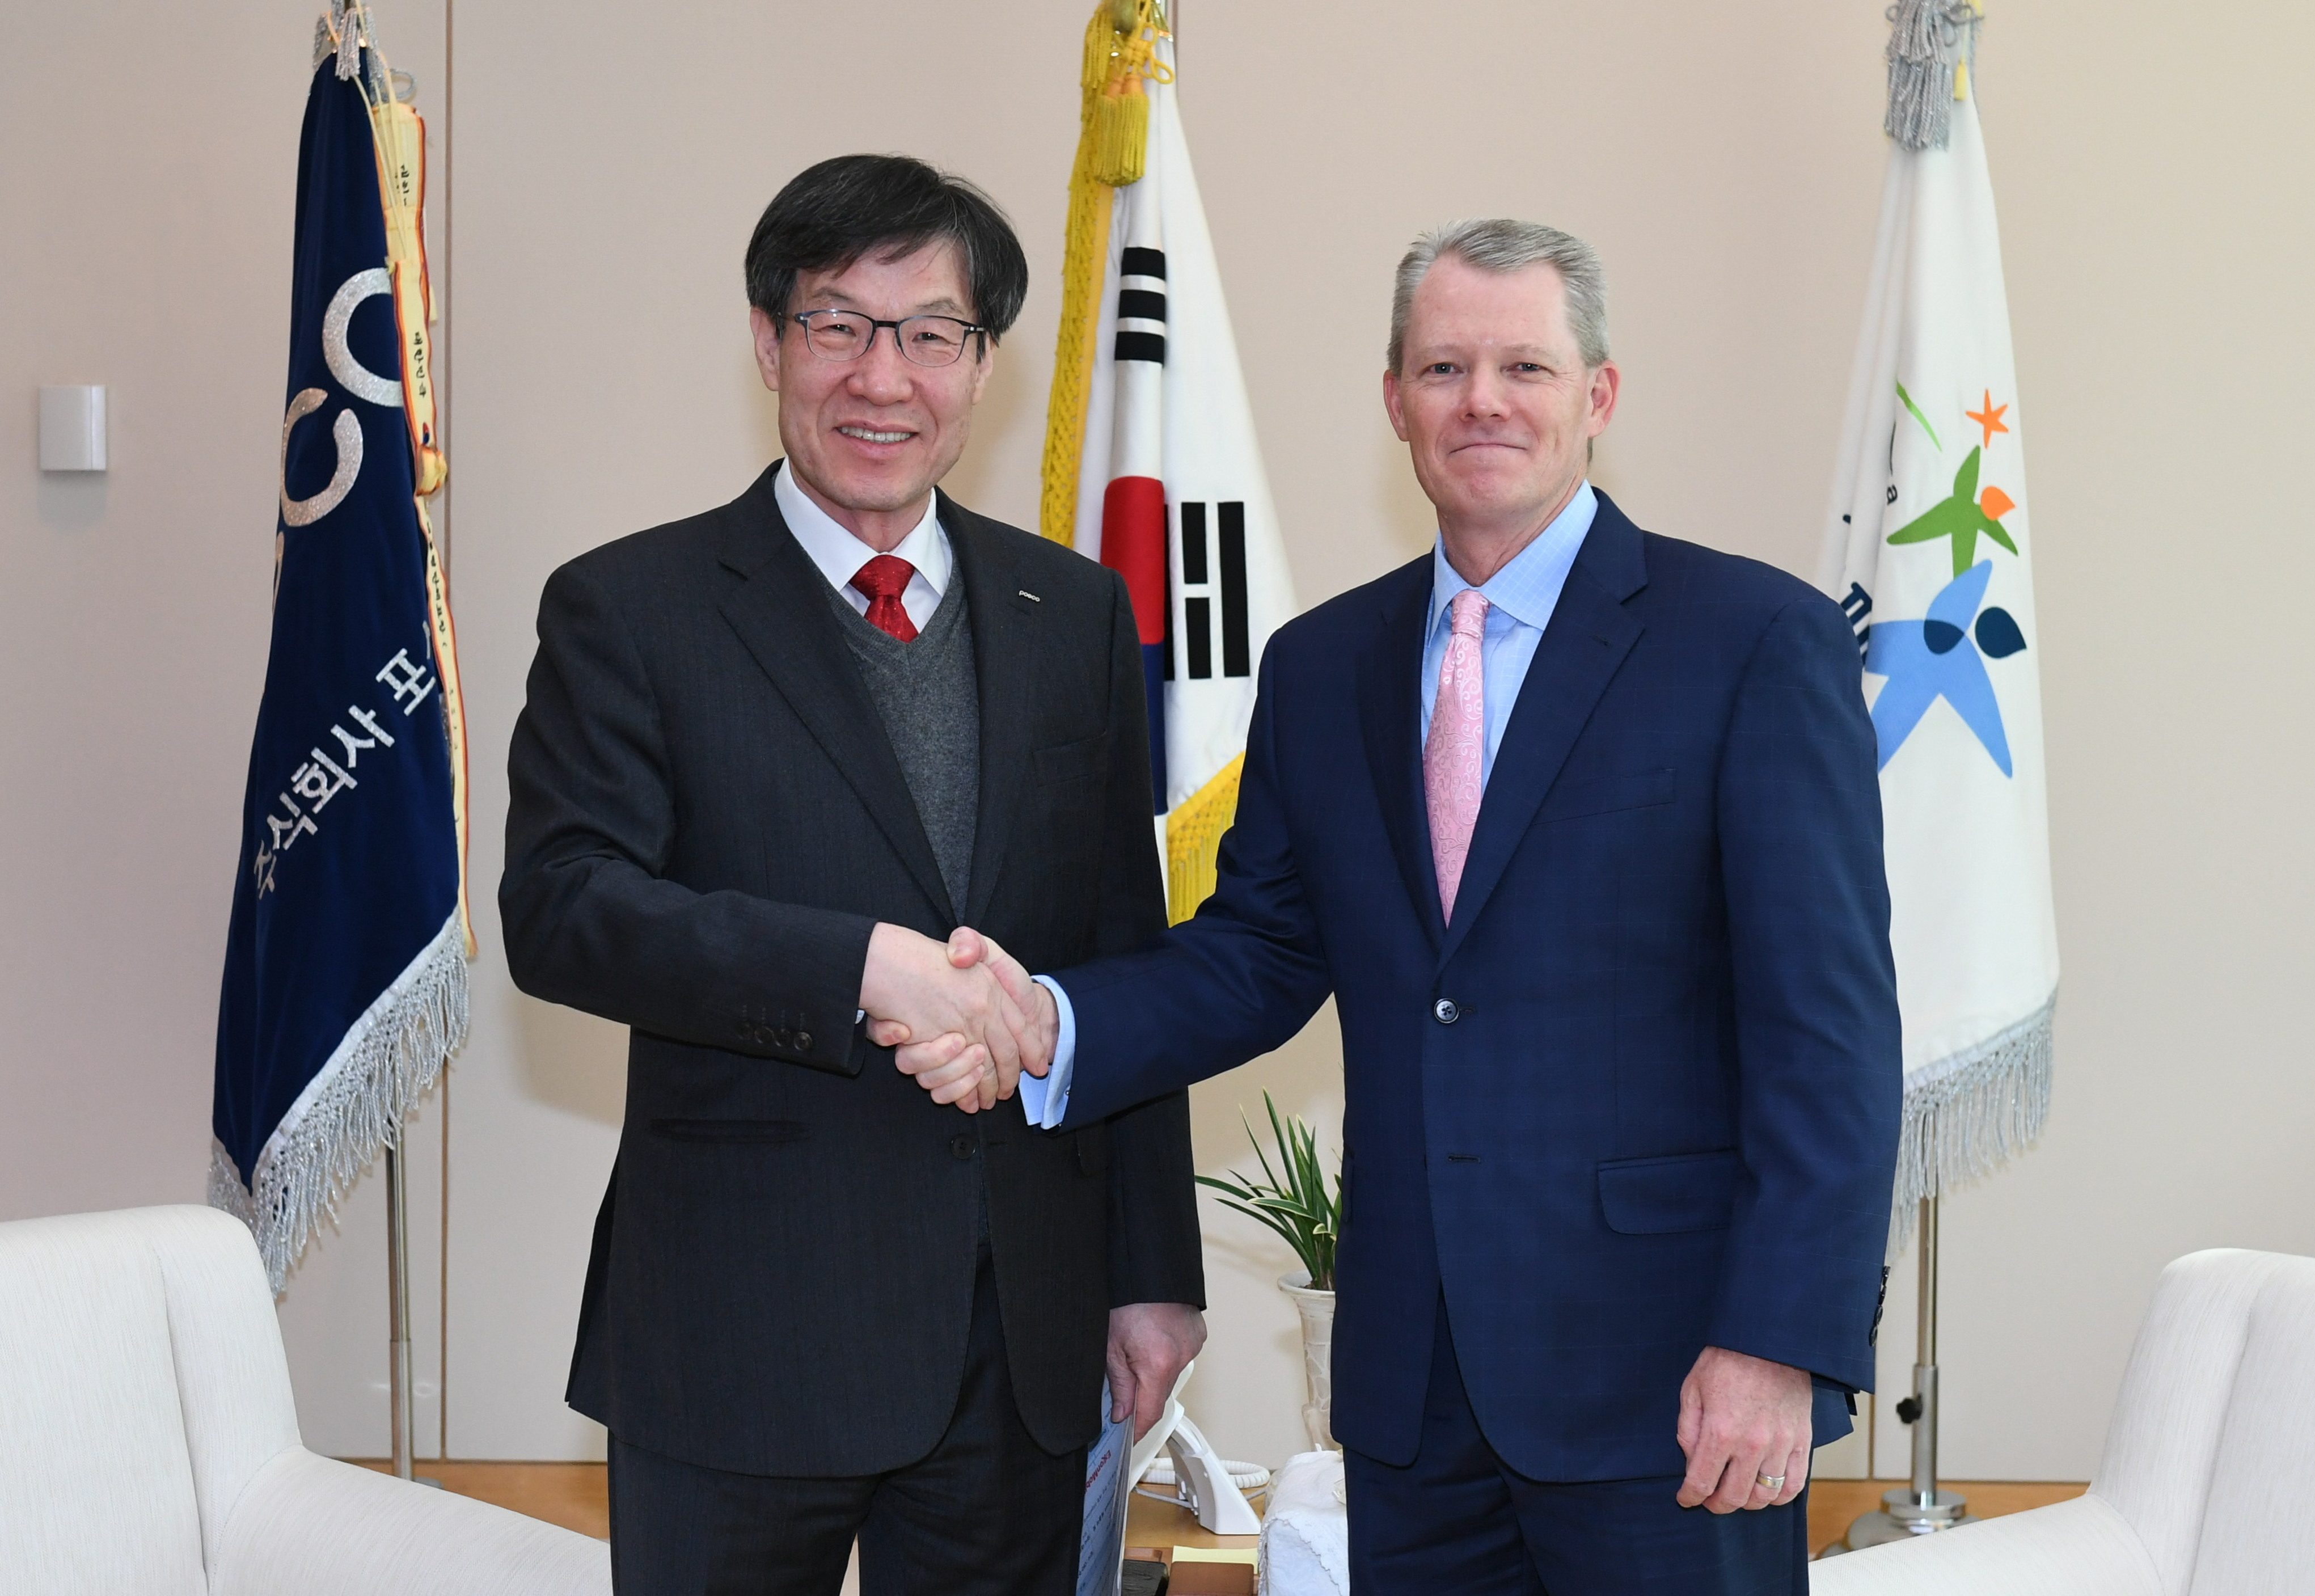 POSCO chairman Kwon Oh-joon (left) met Tom Schuessler, president of ExxonMobil who visited the POSCO Center in Seoul on March 22, and discussed ways to cooperate for creation of the synergies of both companies.